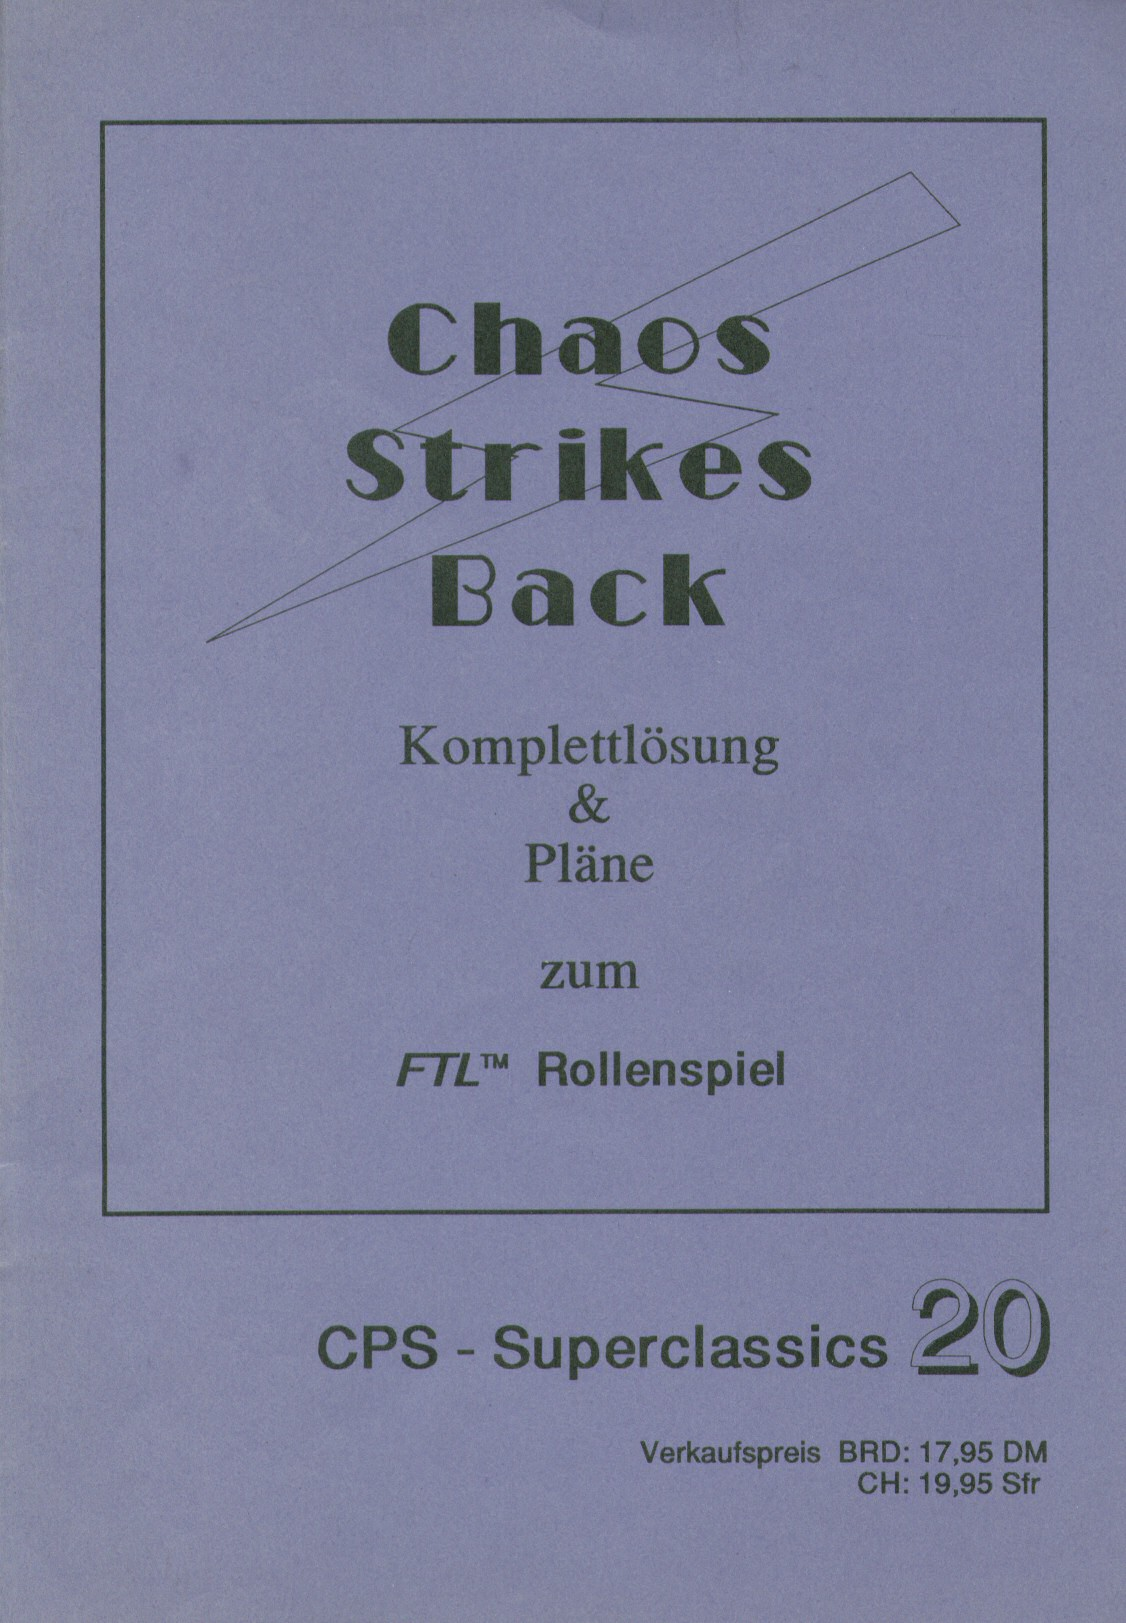 Front cover (outside)